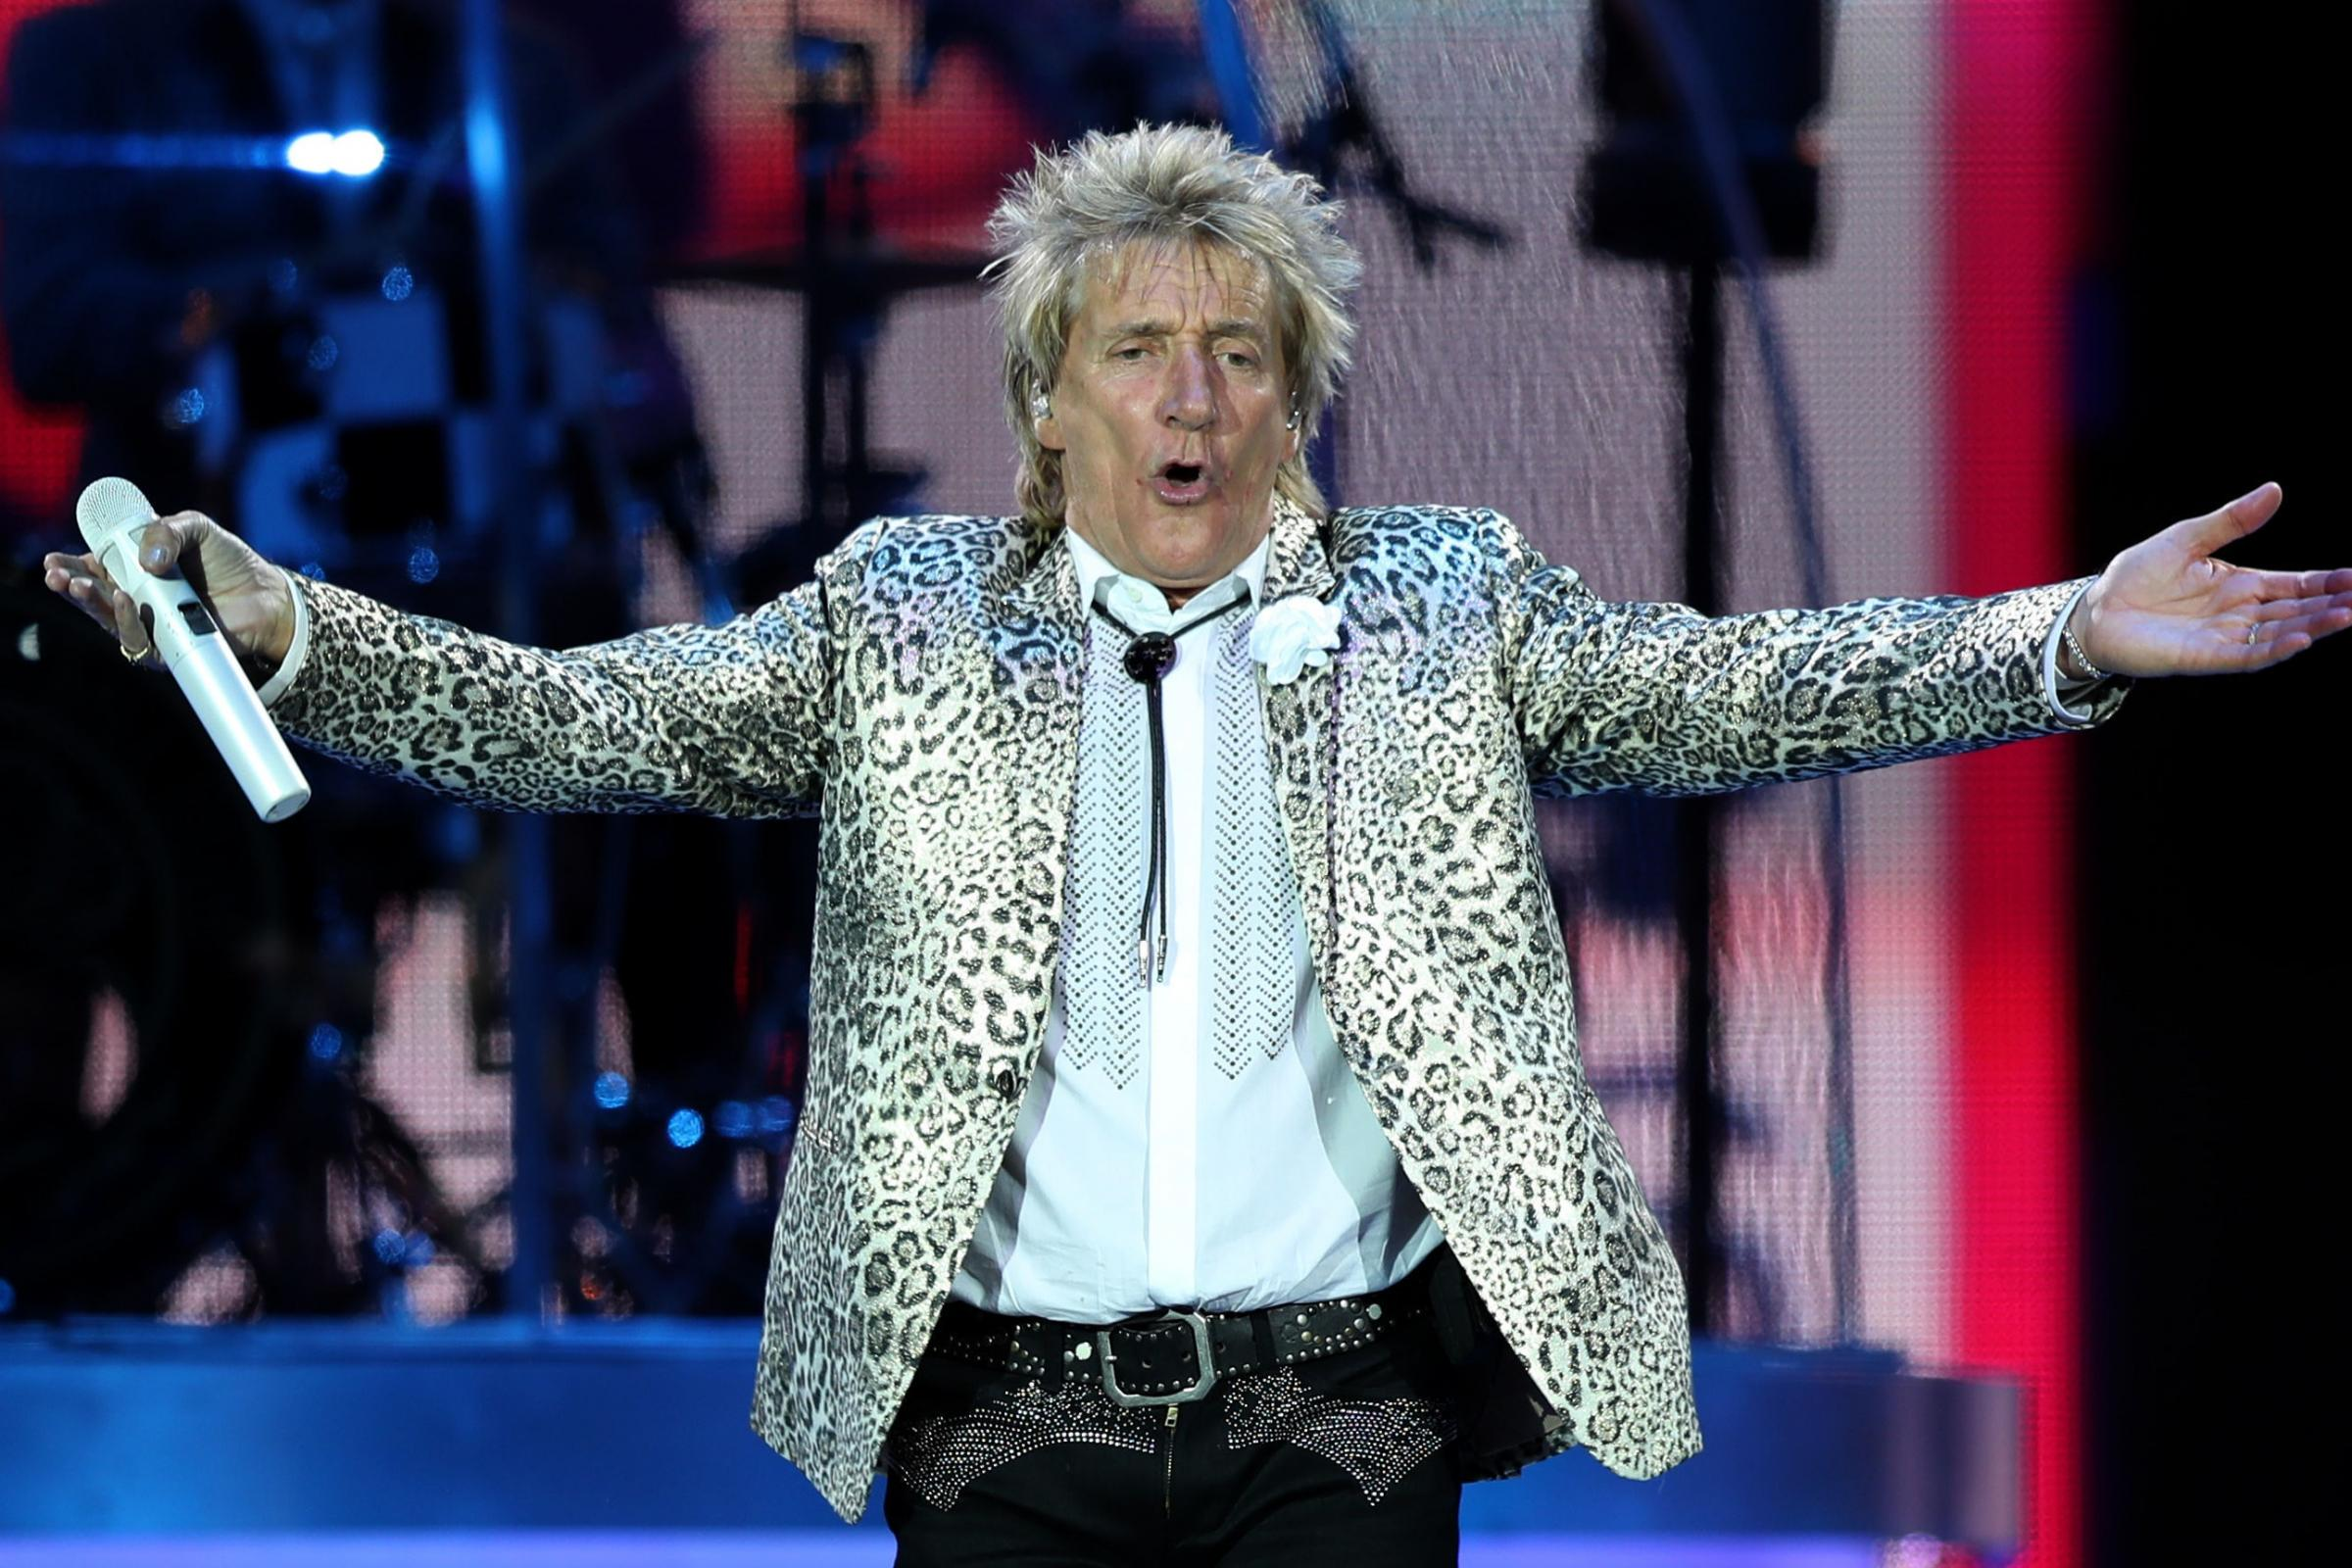 Rod Stewart's Aberdeen concert cancelled amid safety fears due to adverse weather